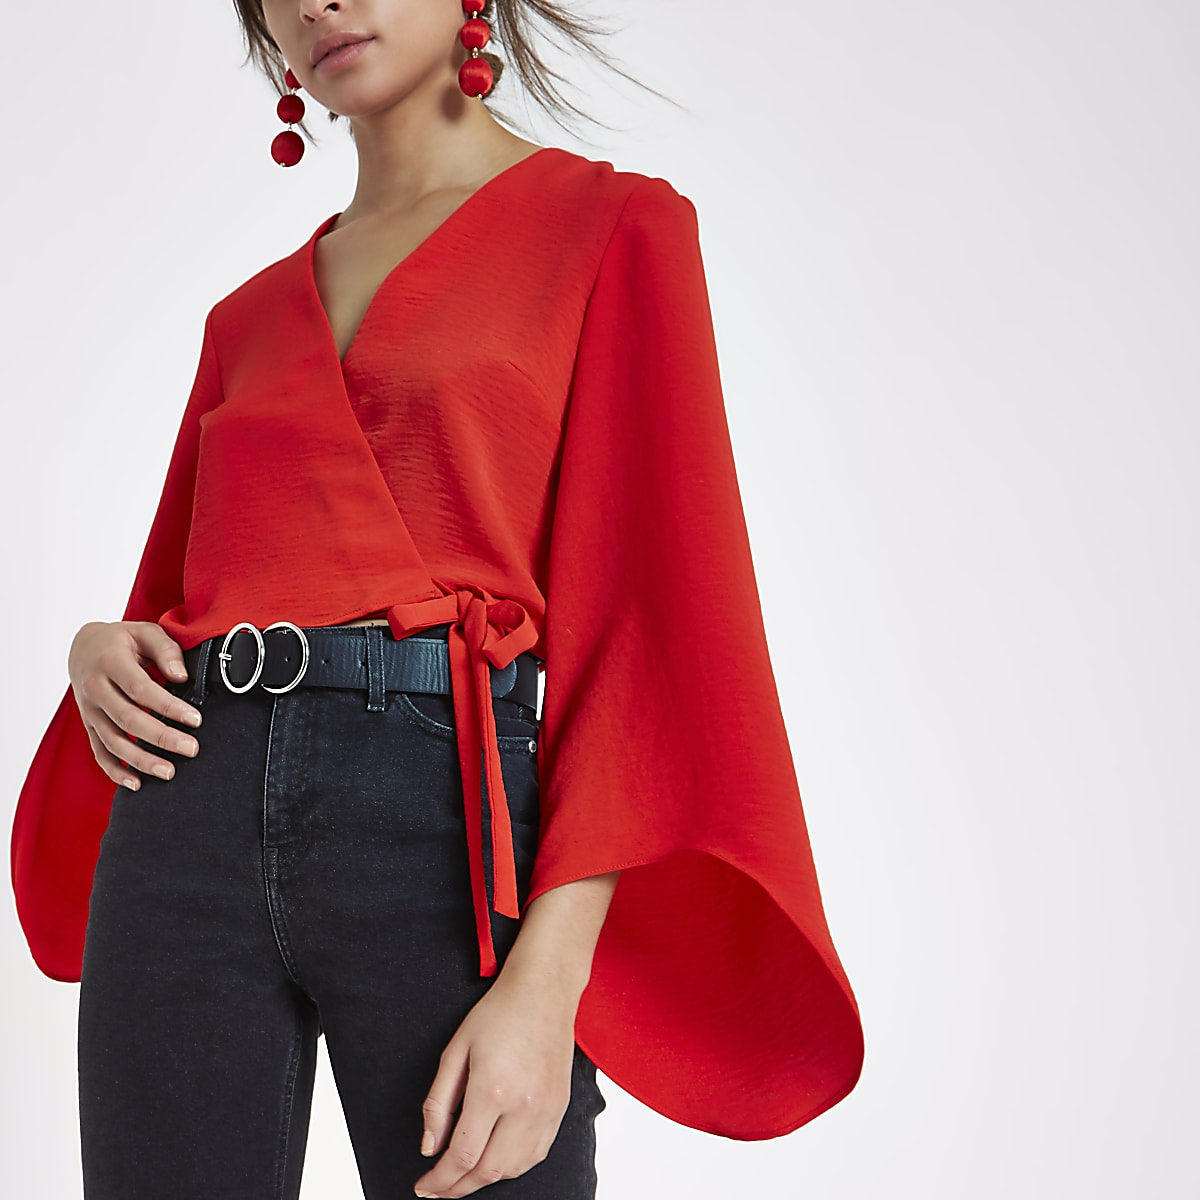 99f7f4dc9 Red wrap long flare sleeve crop top - Crop Tops / Bralets - Tops - women